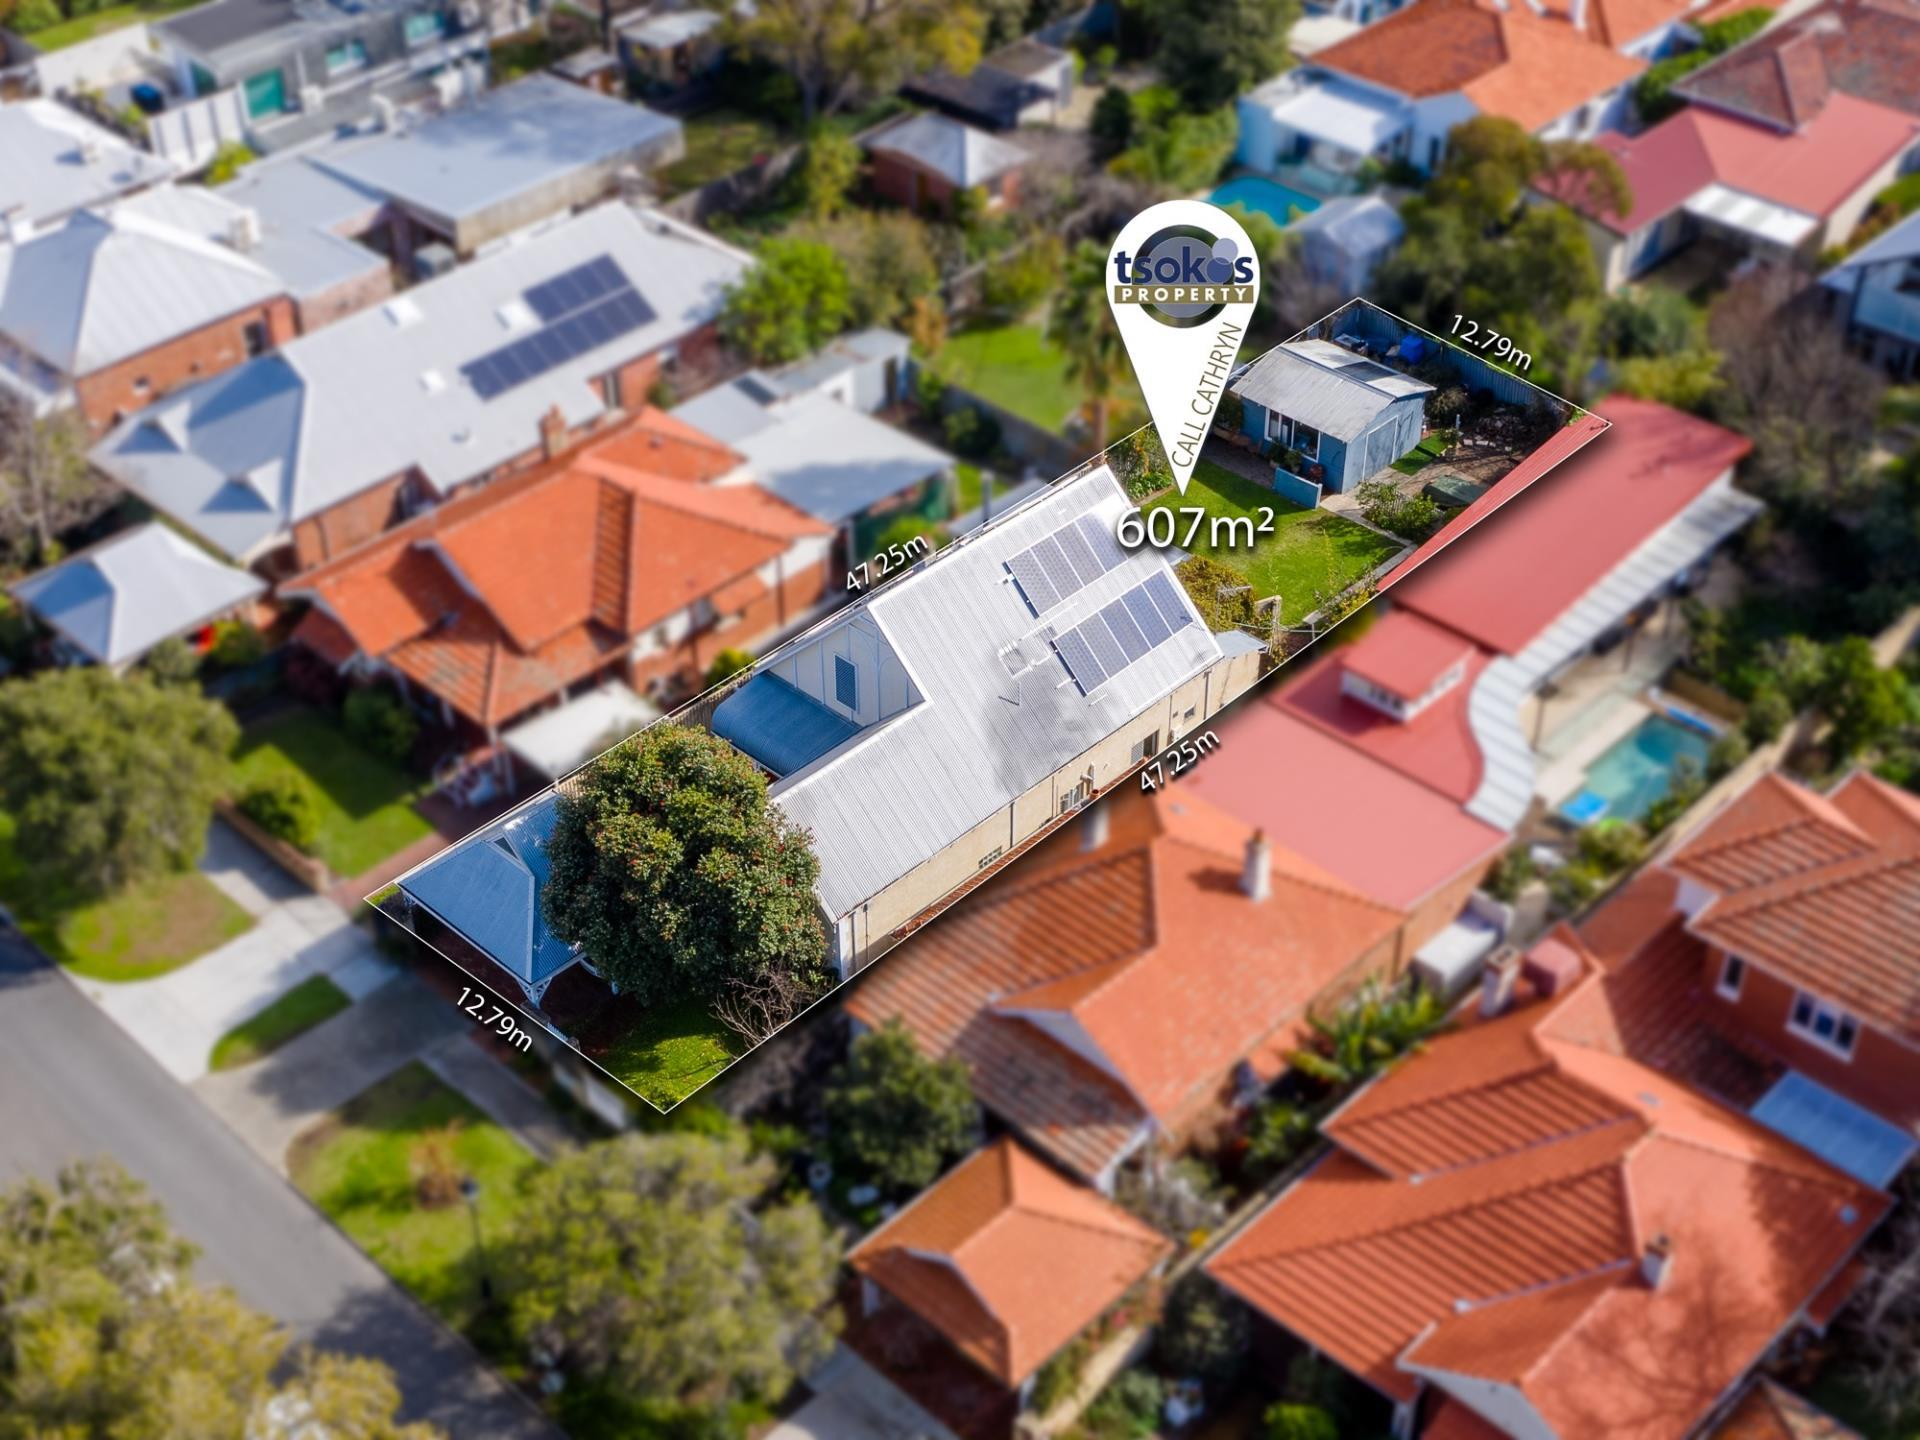 102 Gloster Street, Subiaco